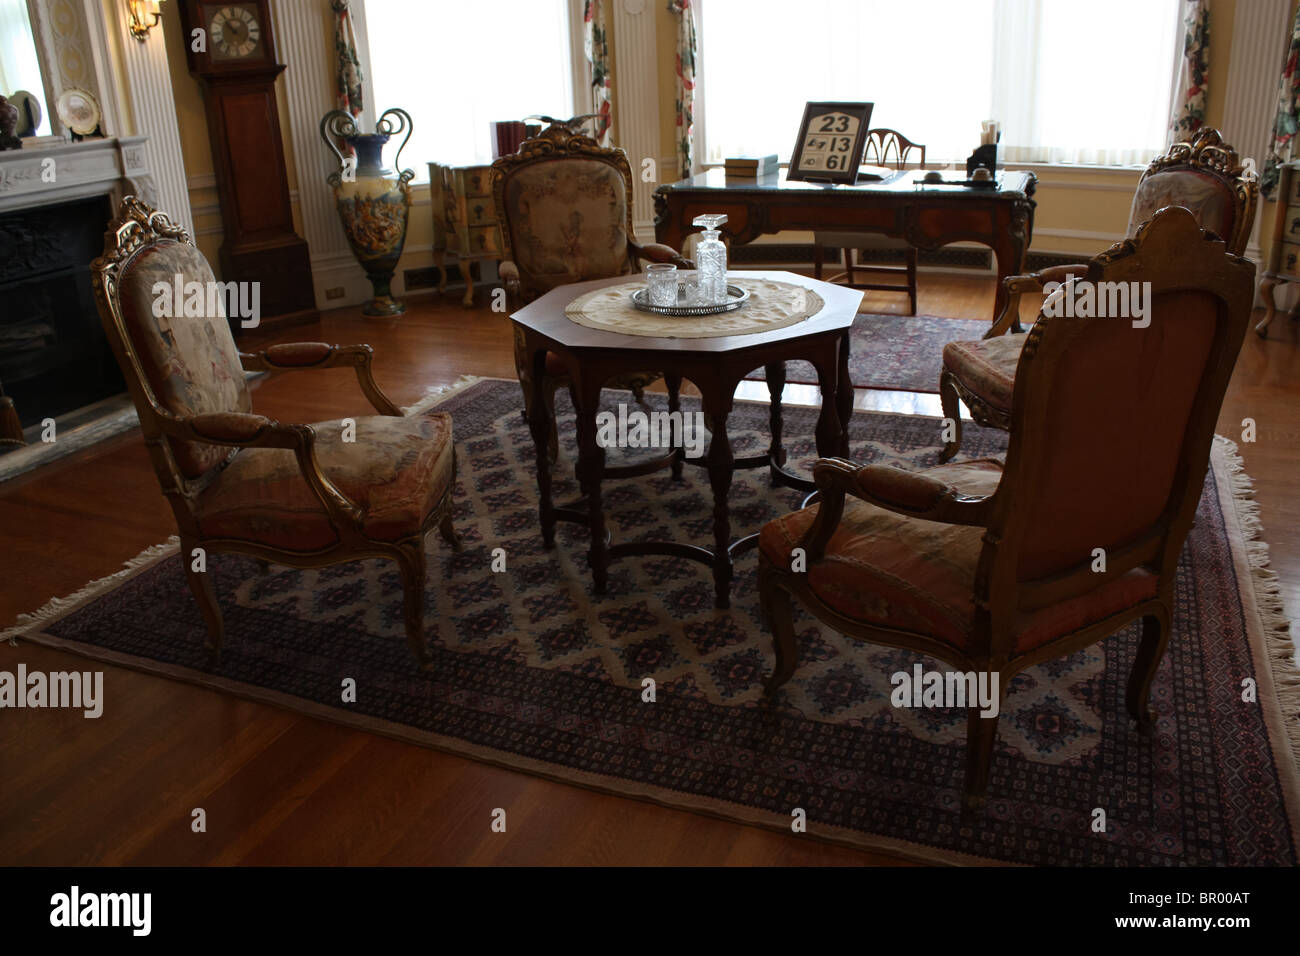 vintage furniture coffee table chair living room - Stock Image